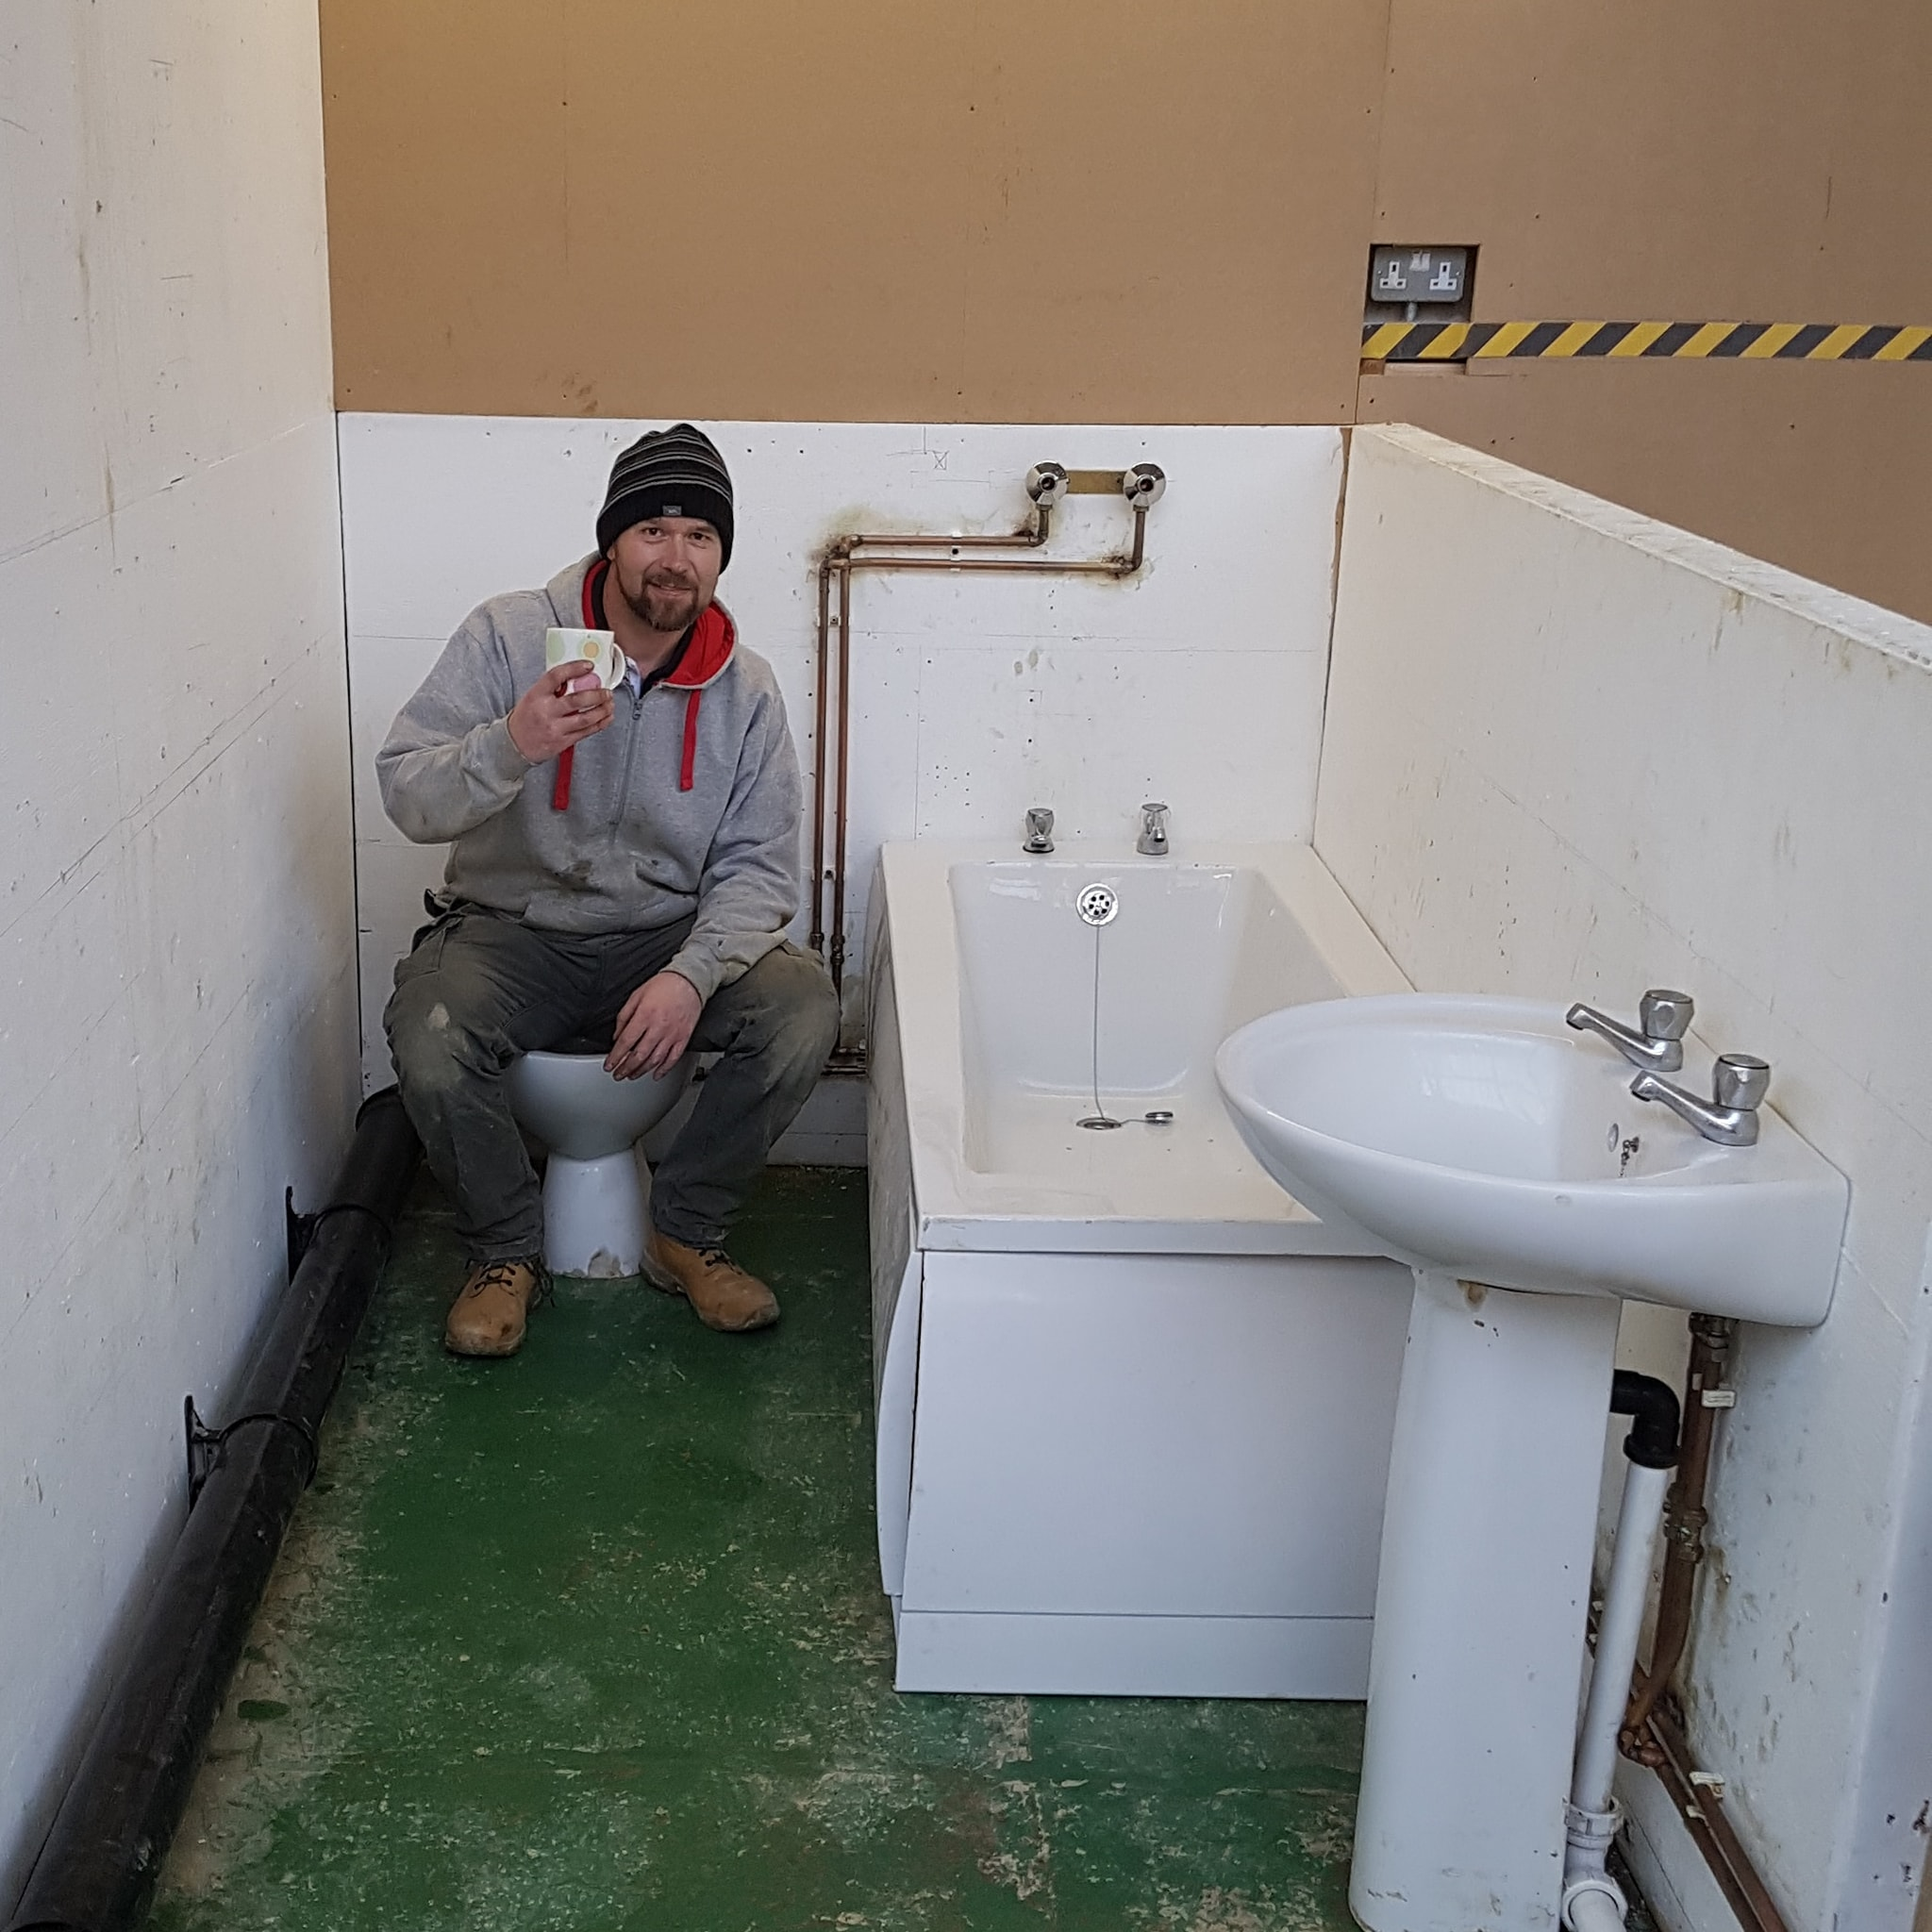 10 day level 1 plumbing course review - YTA Training